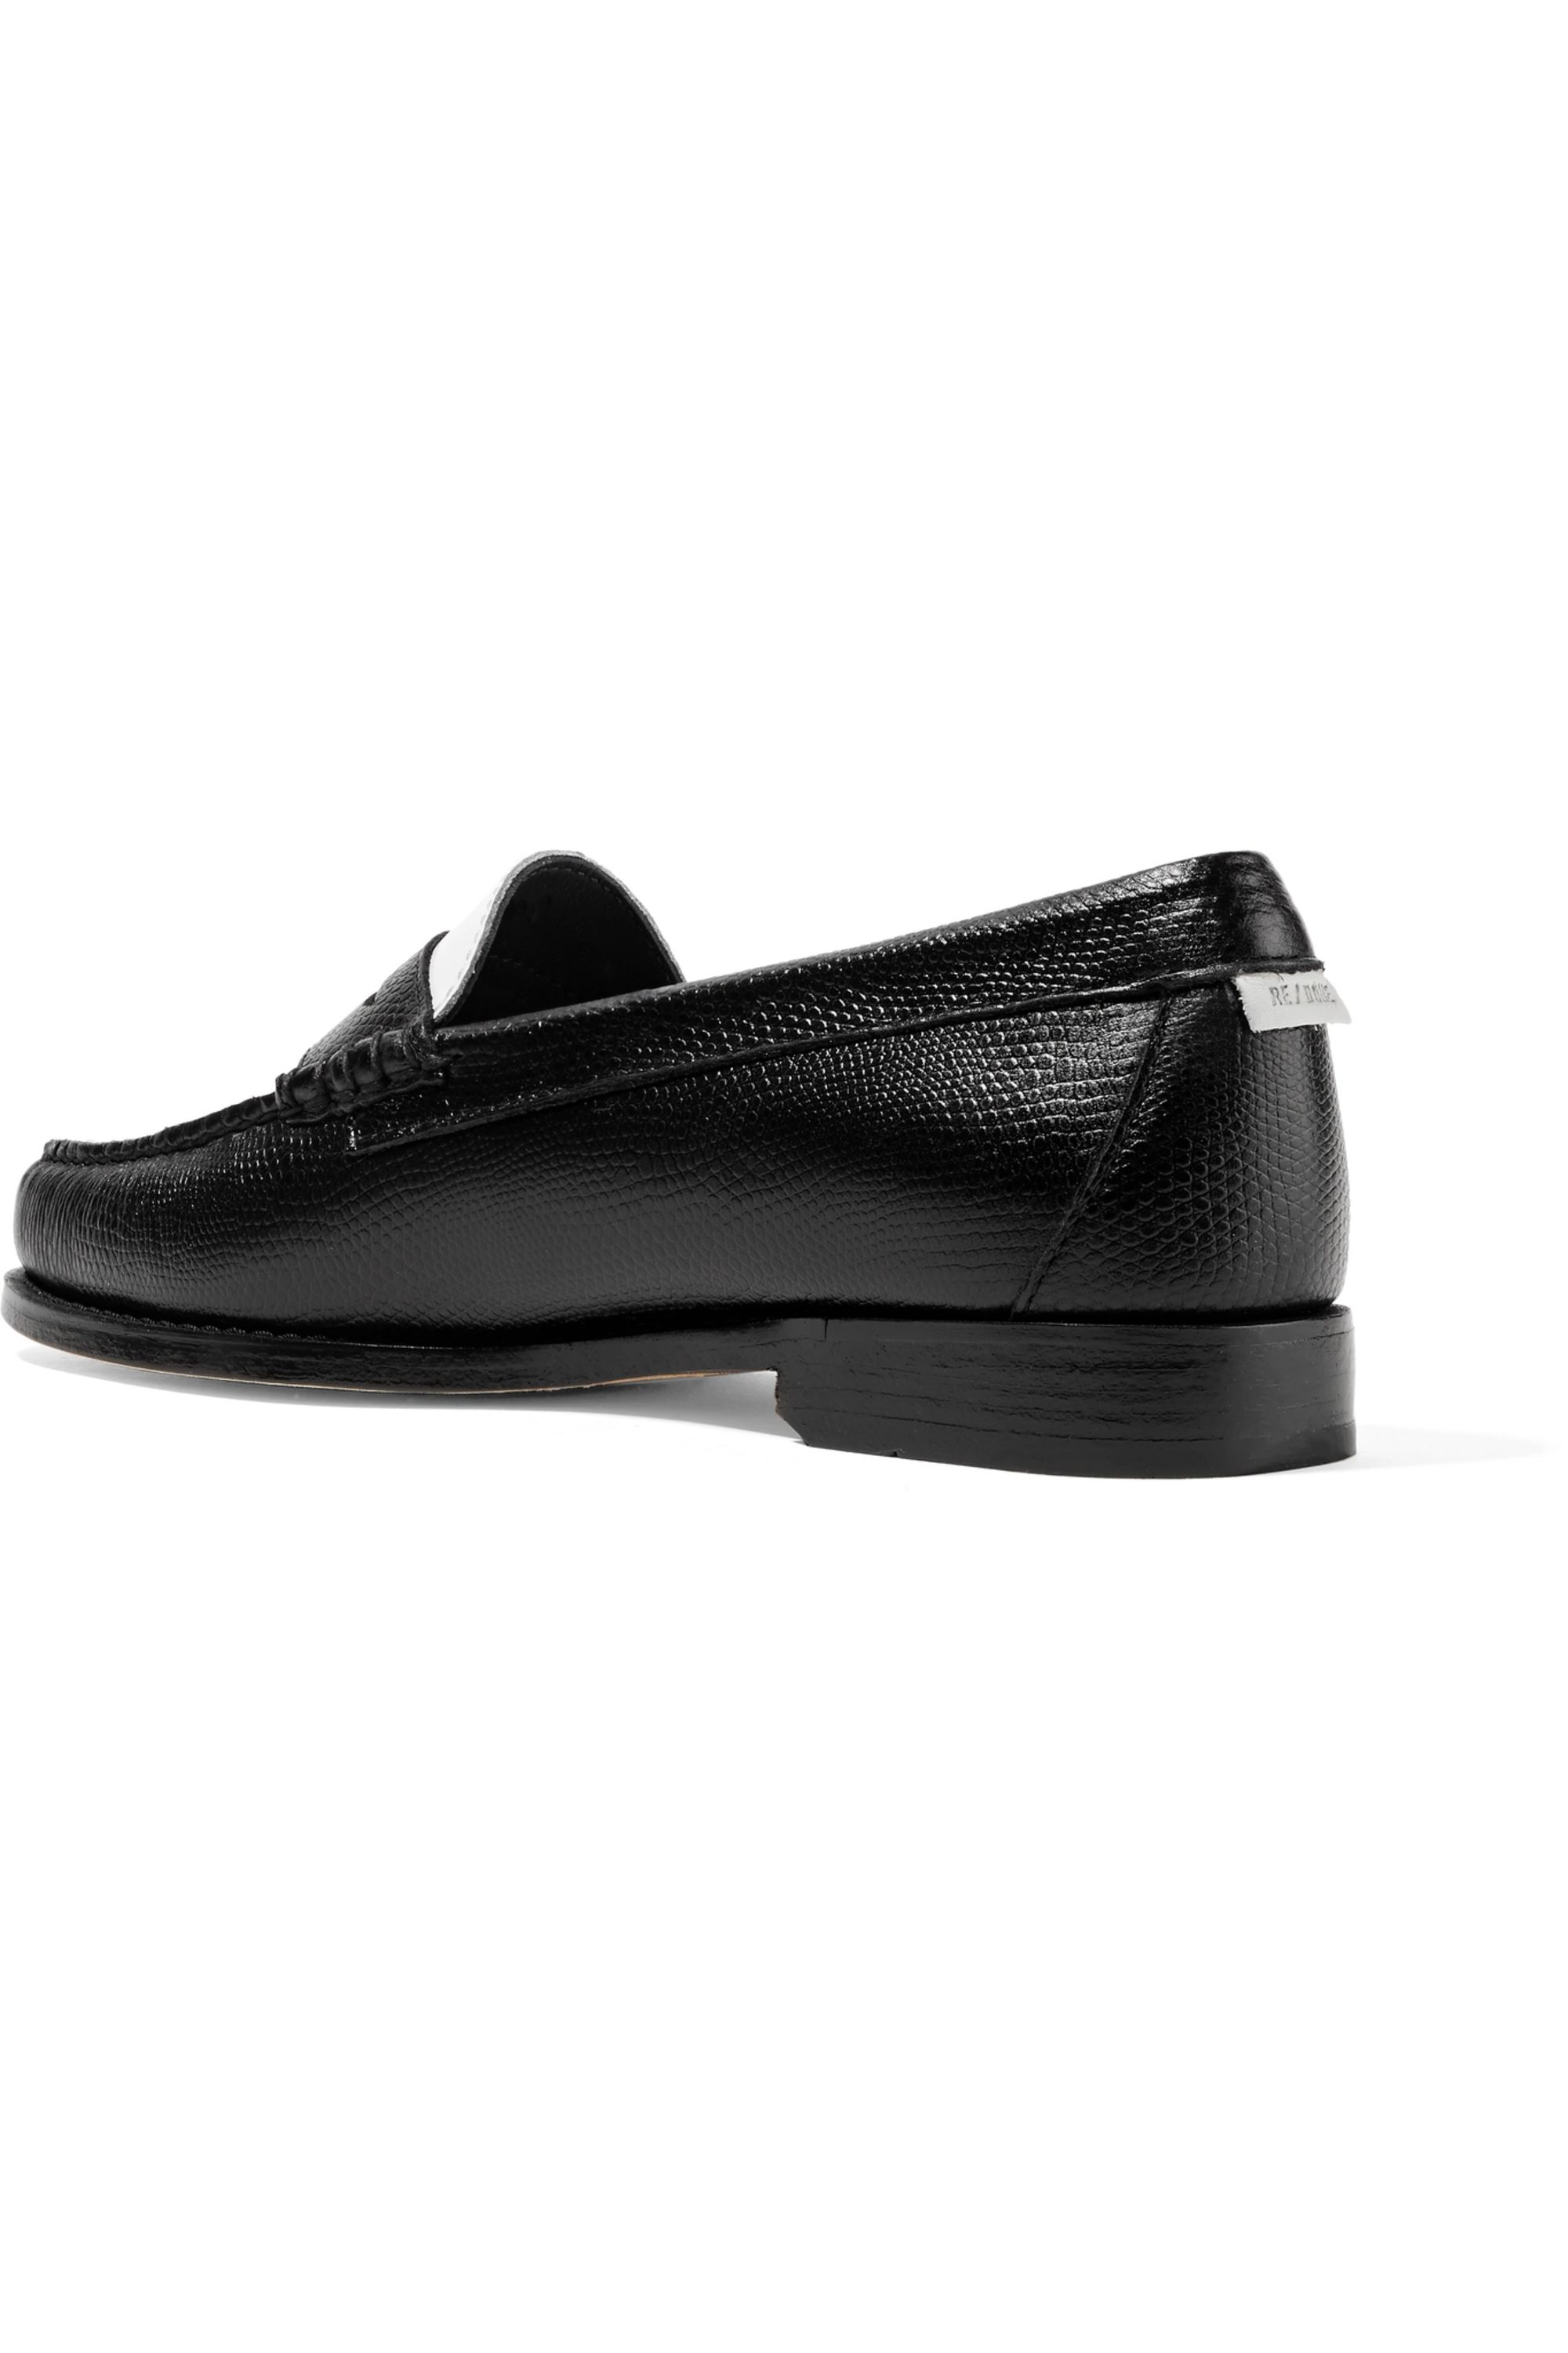 RE/DONE + Weejuns The Whitney patent and lizard-effect leather loafers